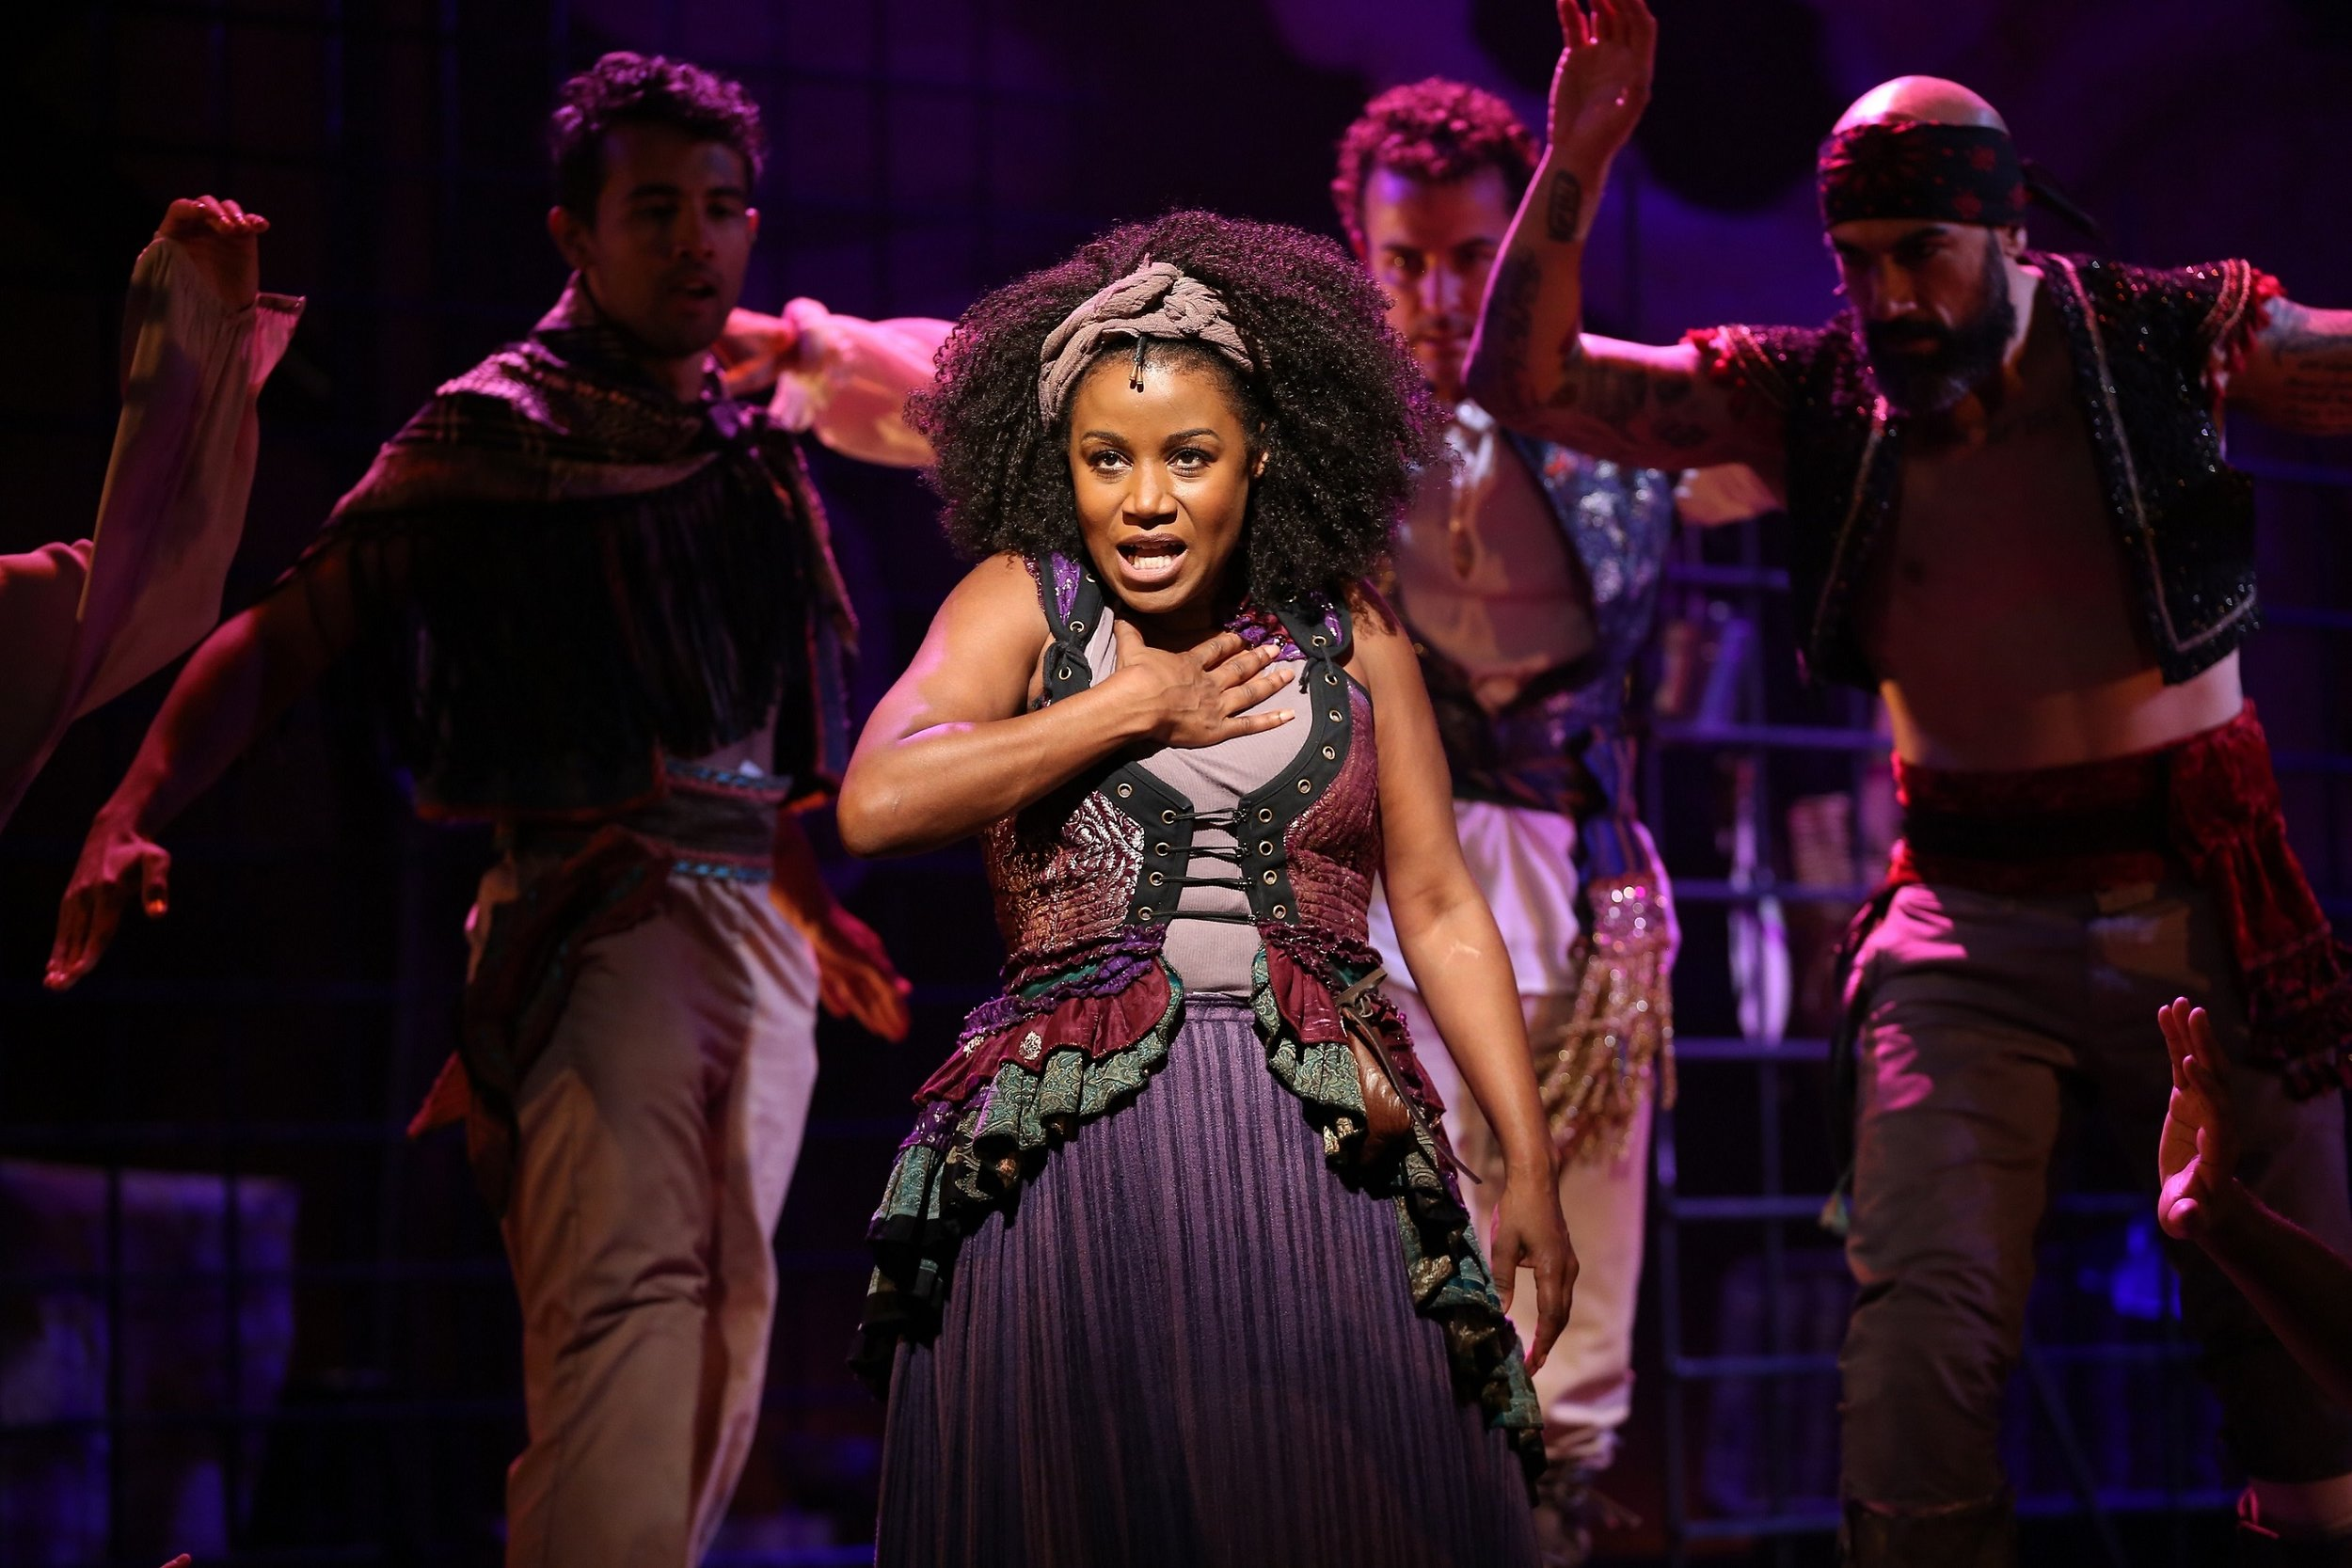 Aldonza (Gisela Adisa) and the cast of Westport Country Playhouse's production of Man of La Mancha